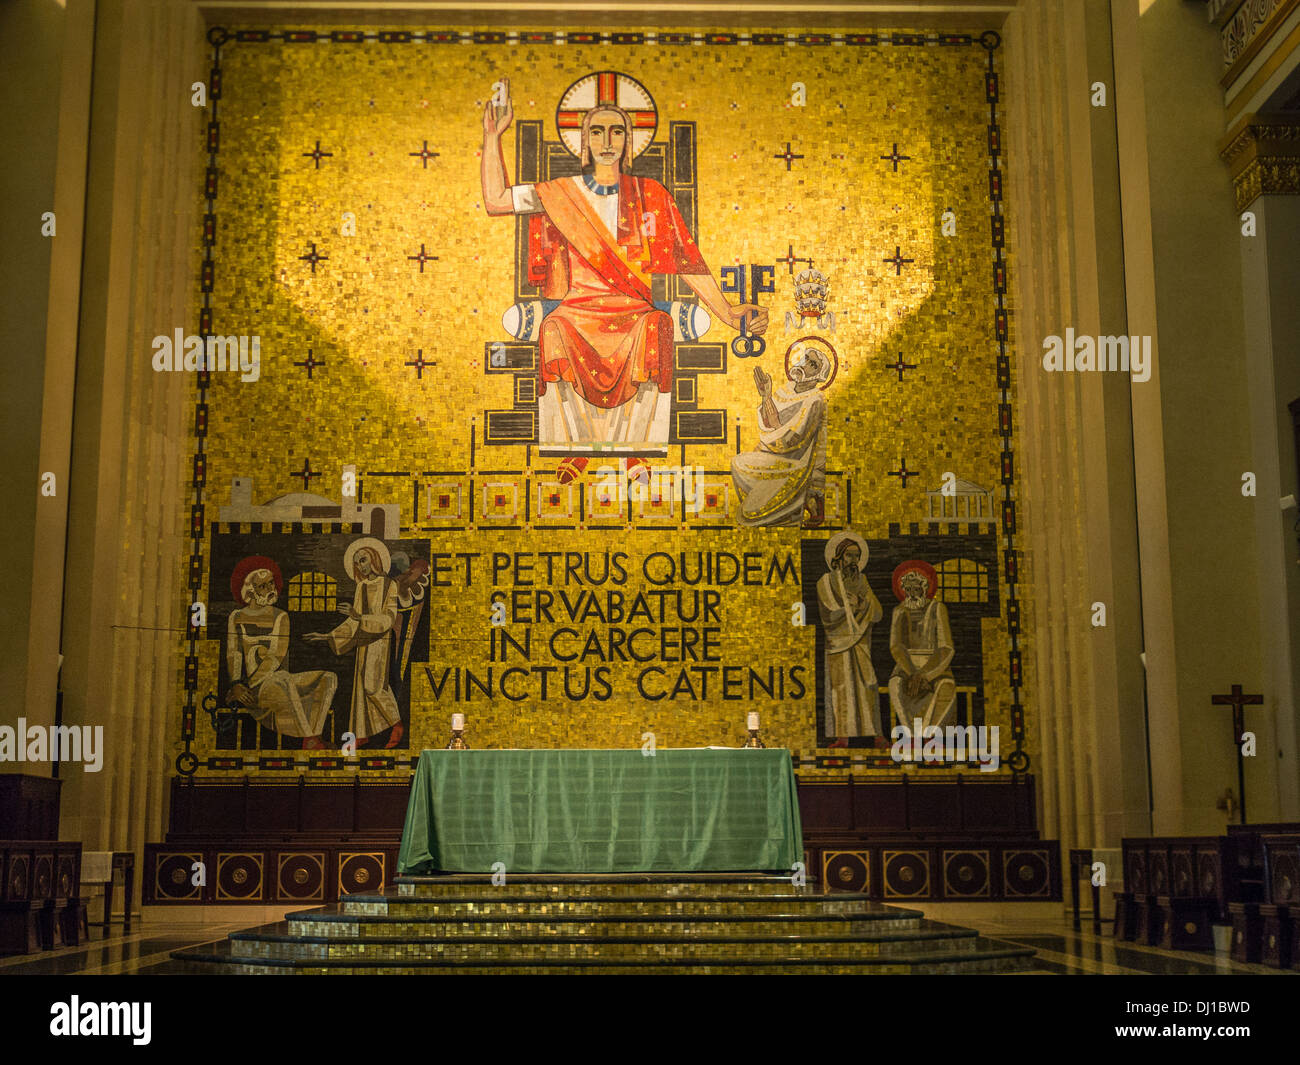 Mosaic behind the Altar. Depicts Christ bestowing the power of the keys upon St. Peter. Byzantine style, Venetian glass. - Stock Image